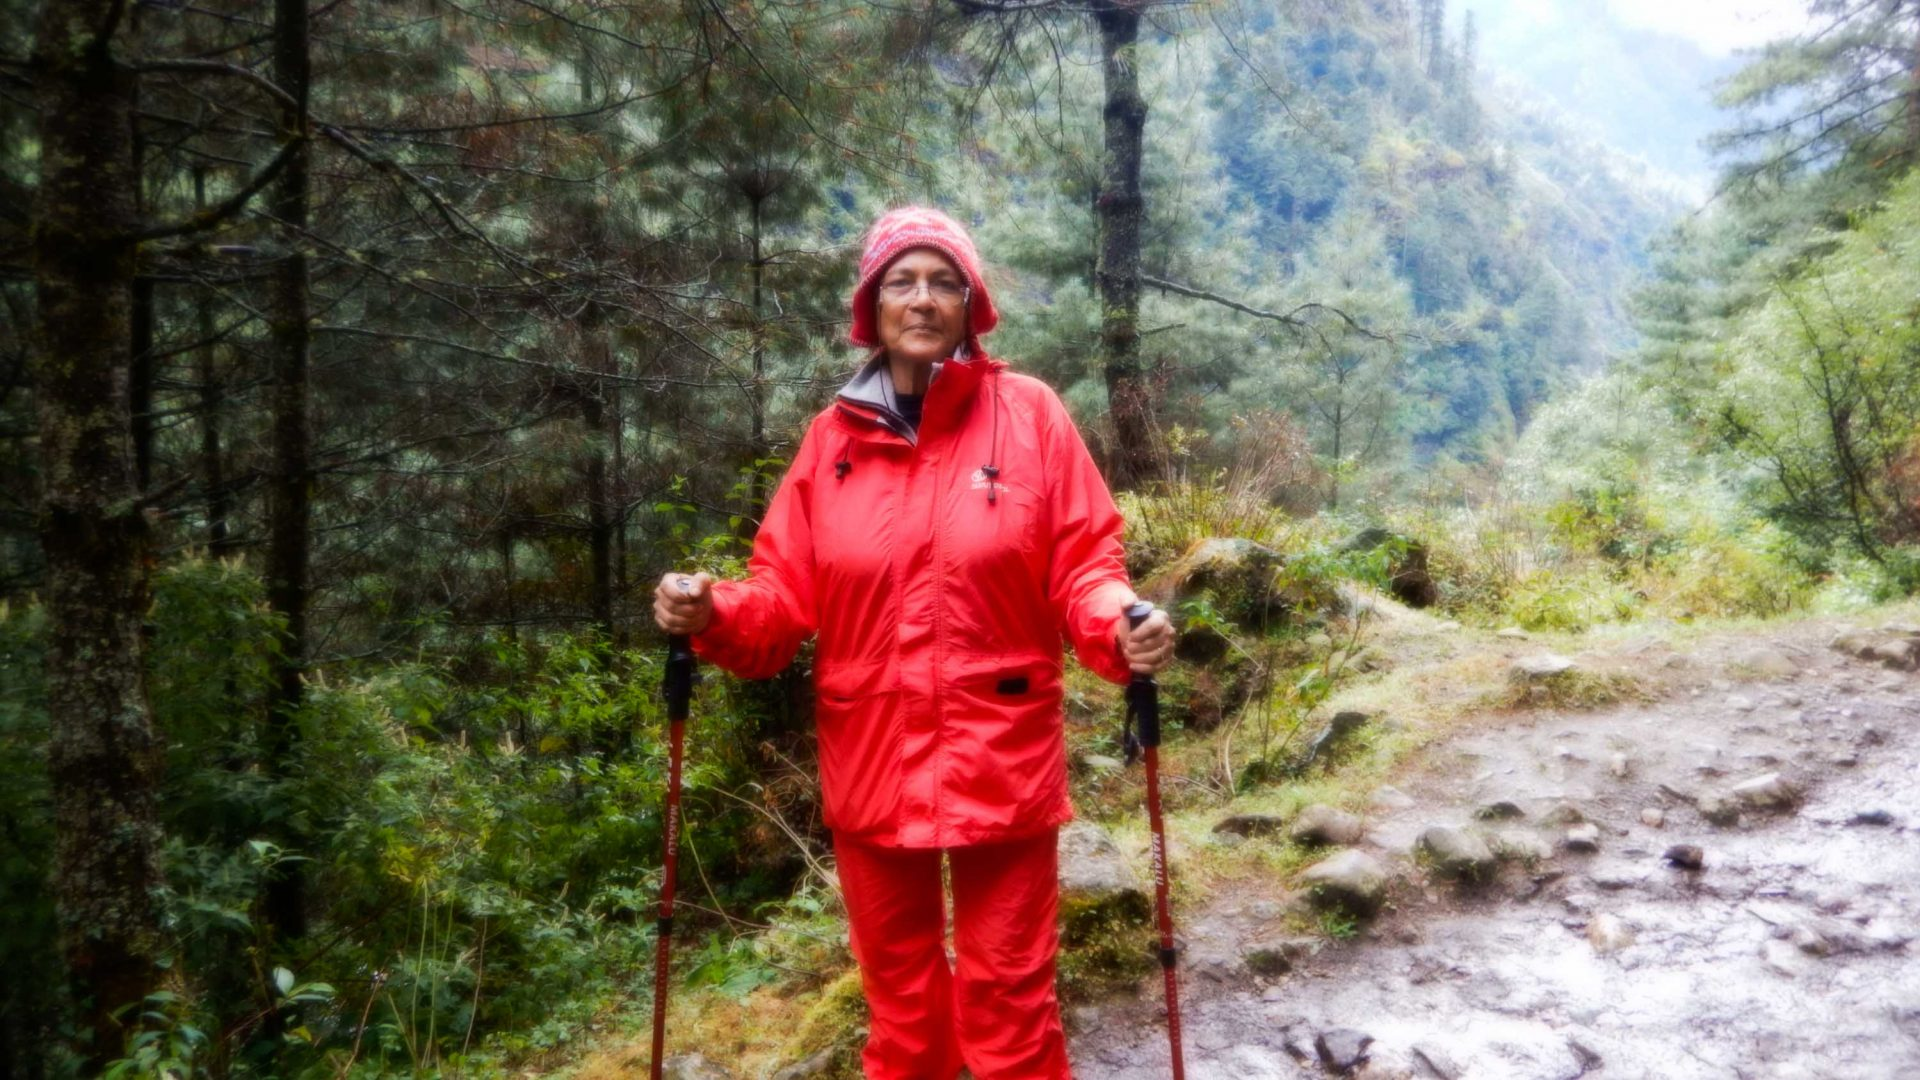 Life begins at 50: This woman has visited 65 countries in under two decades